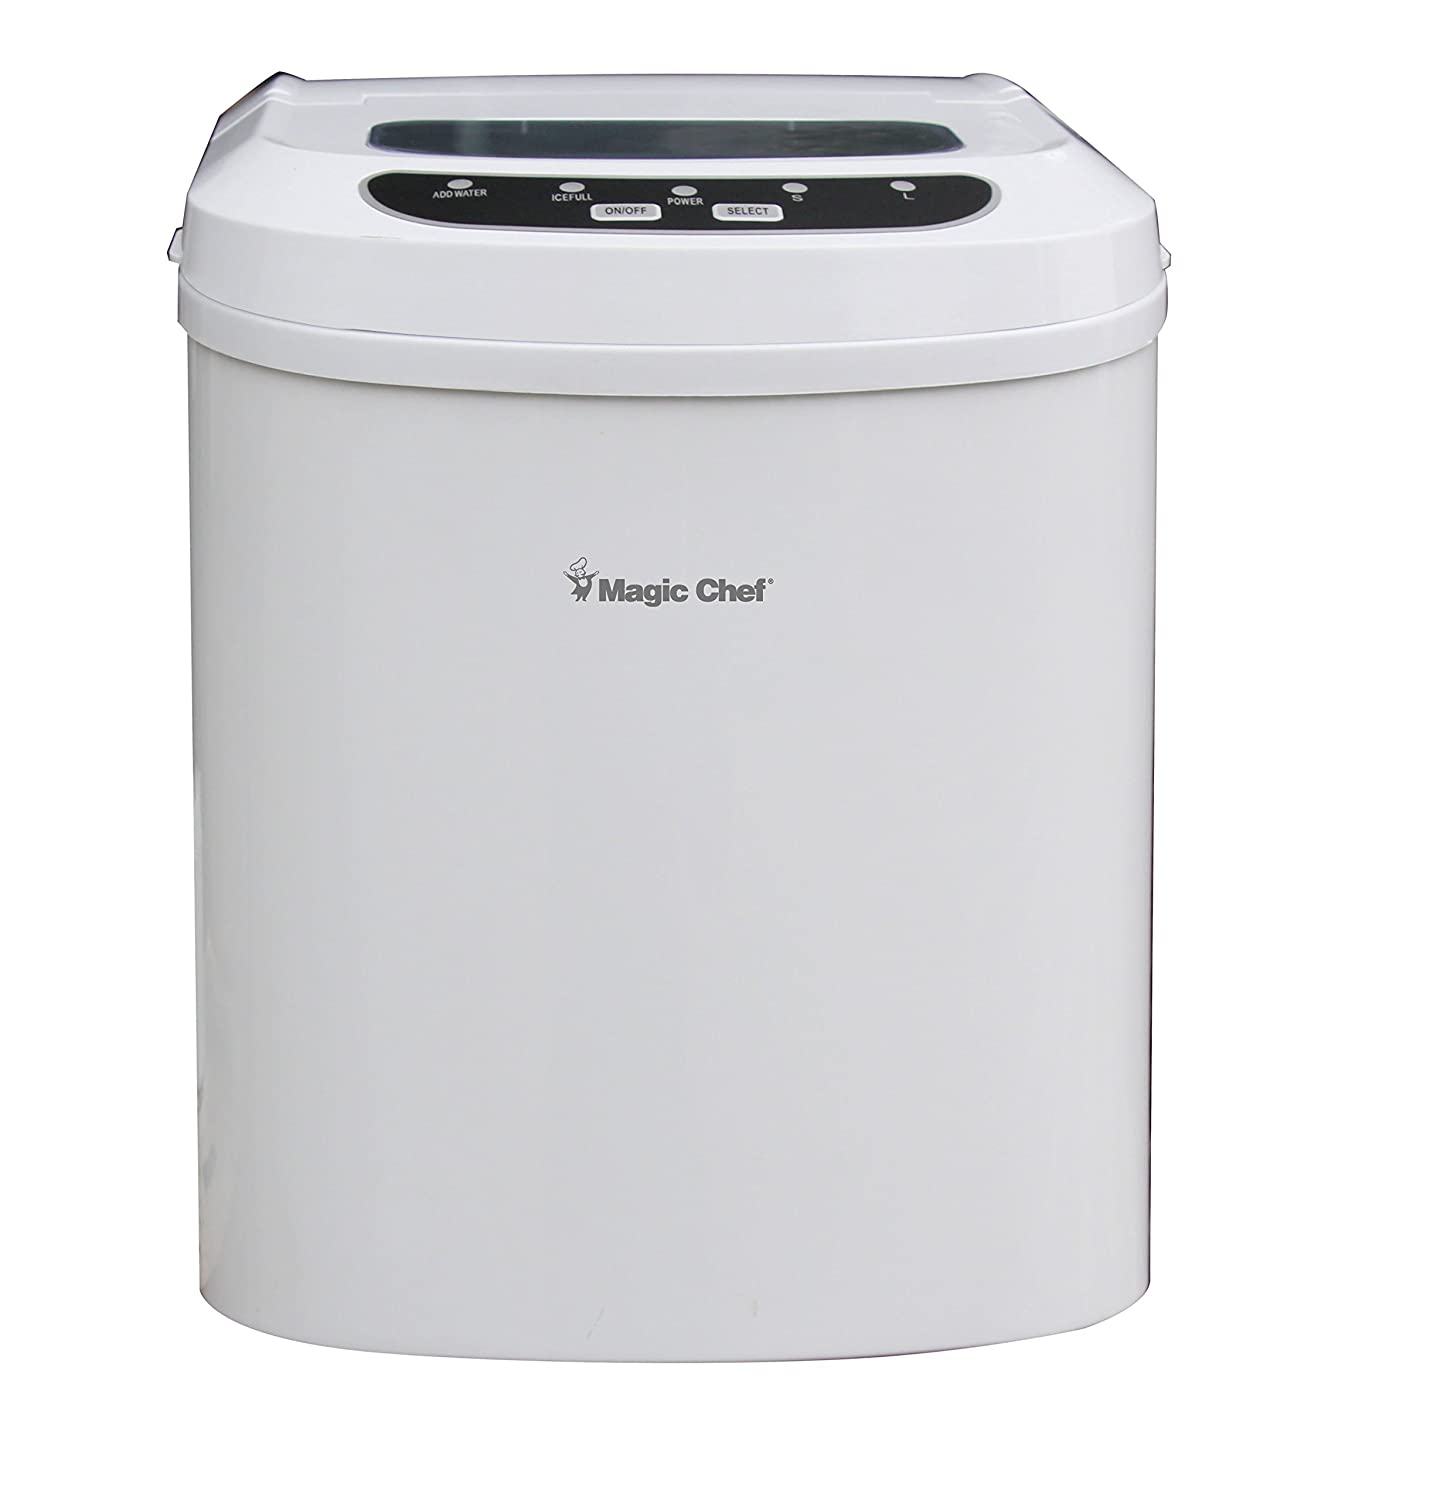 Magic Chef 27-Lb. Portable Countertop MCIM22W 27 lb Ice Maker White